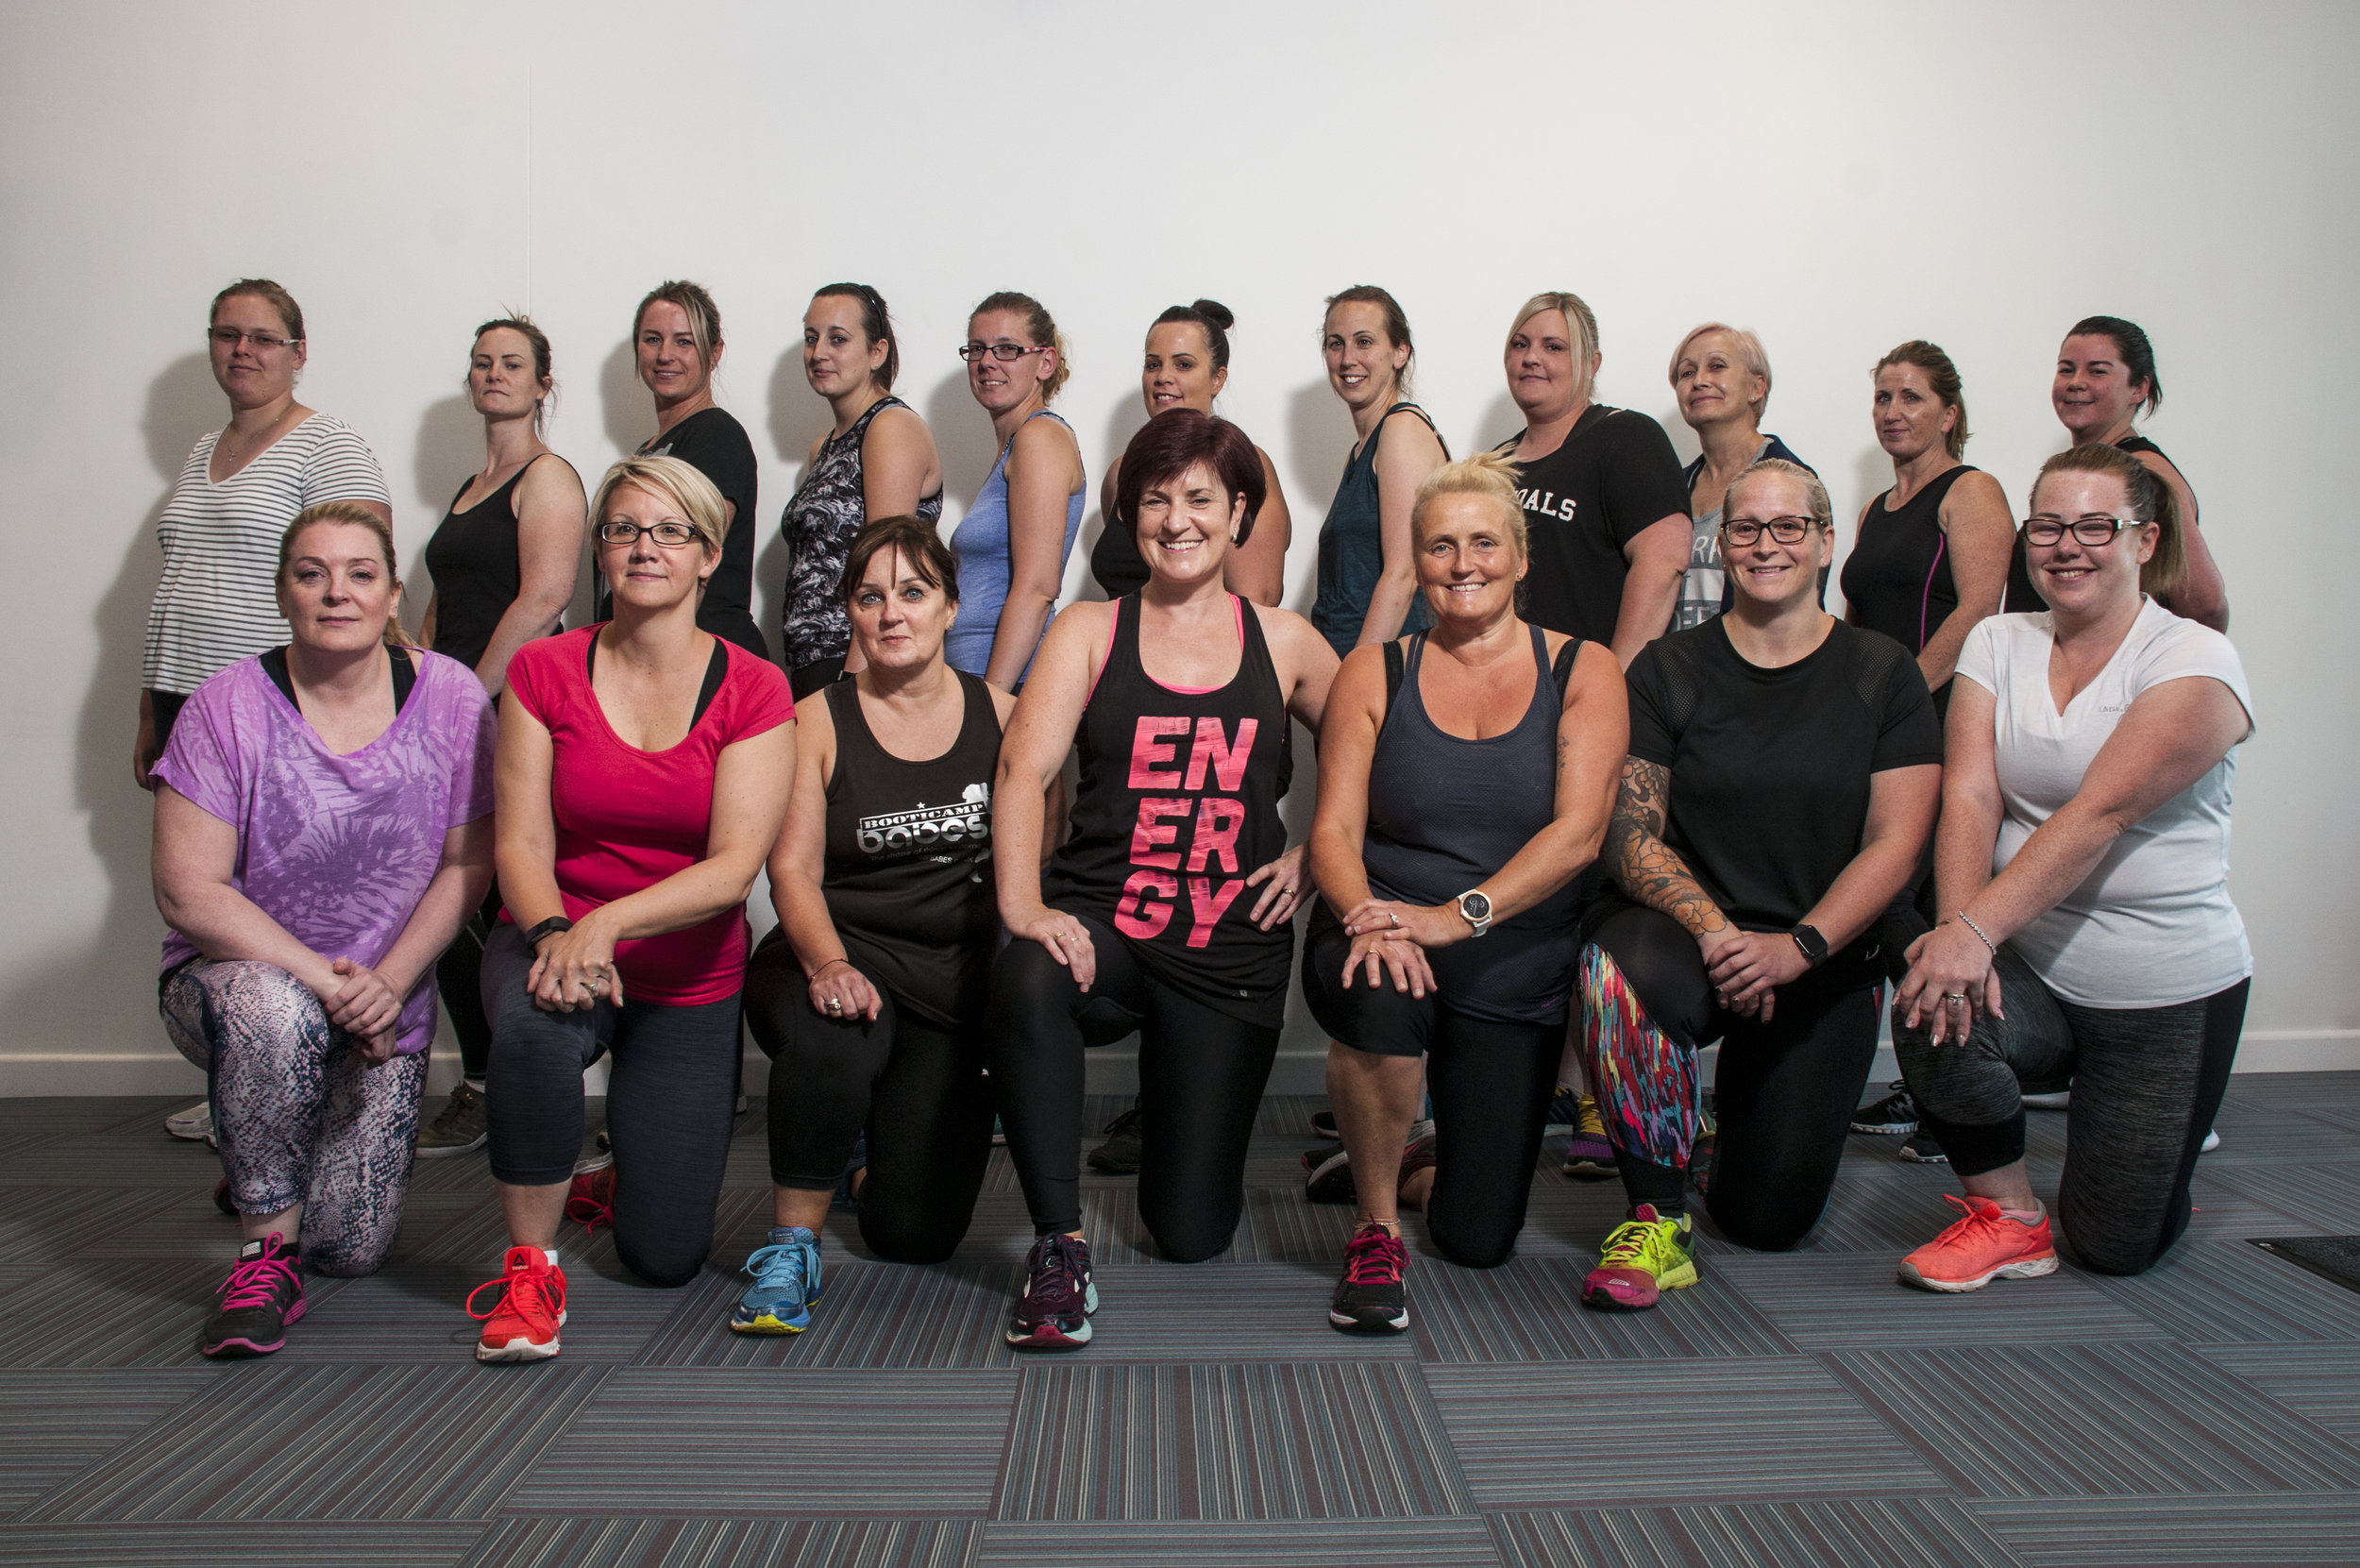 Member of hte Body Blast class, which is hosted by fitness instructor Julie Bamford (front row, centre). The class is held every Tuesday at Greenwich Community Centre, close to Deer Park.